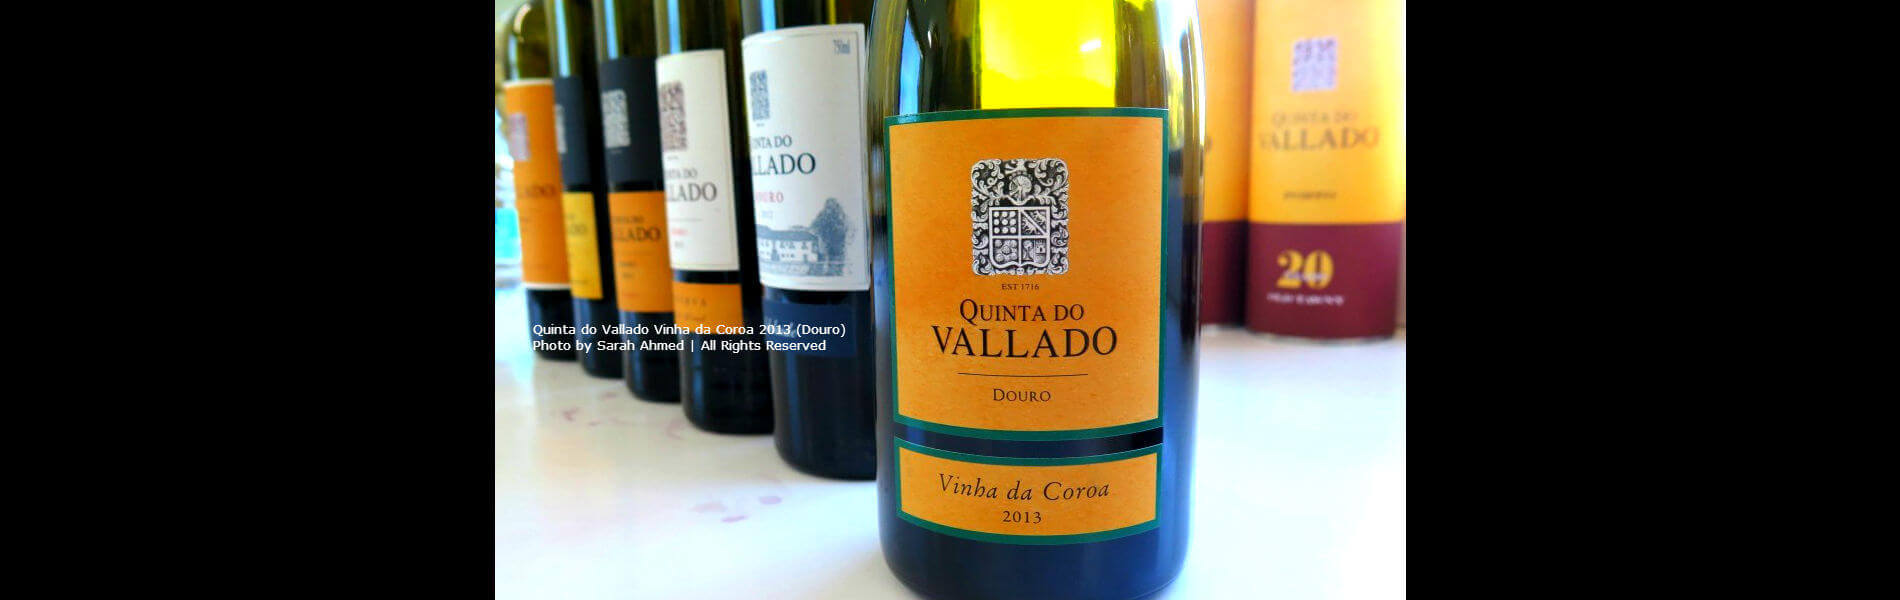 Blend-All-About-Wine-Quinta do Vallado-Slider